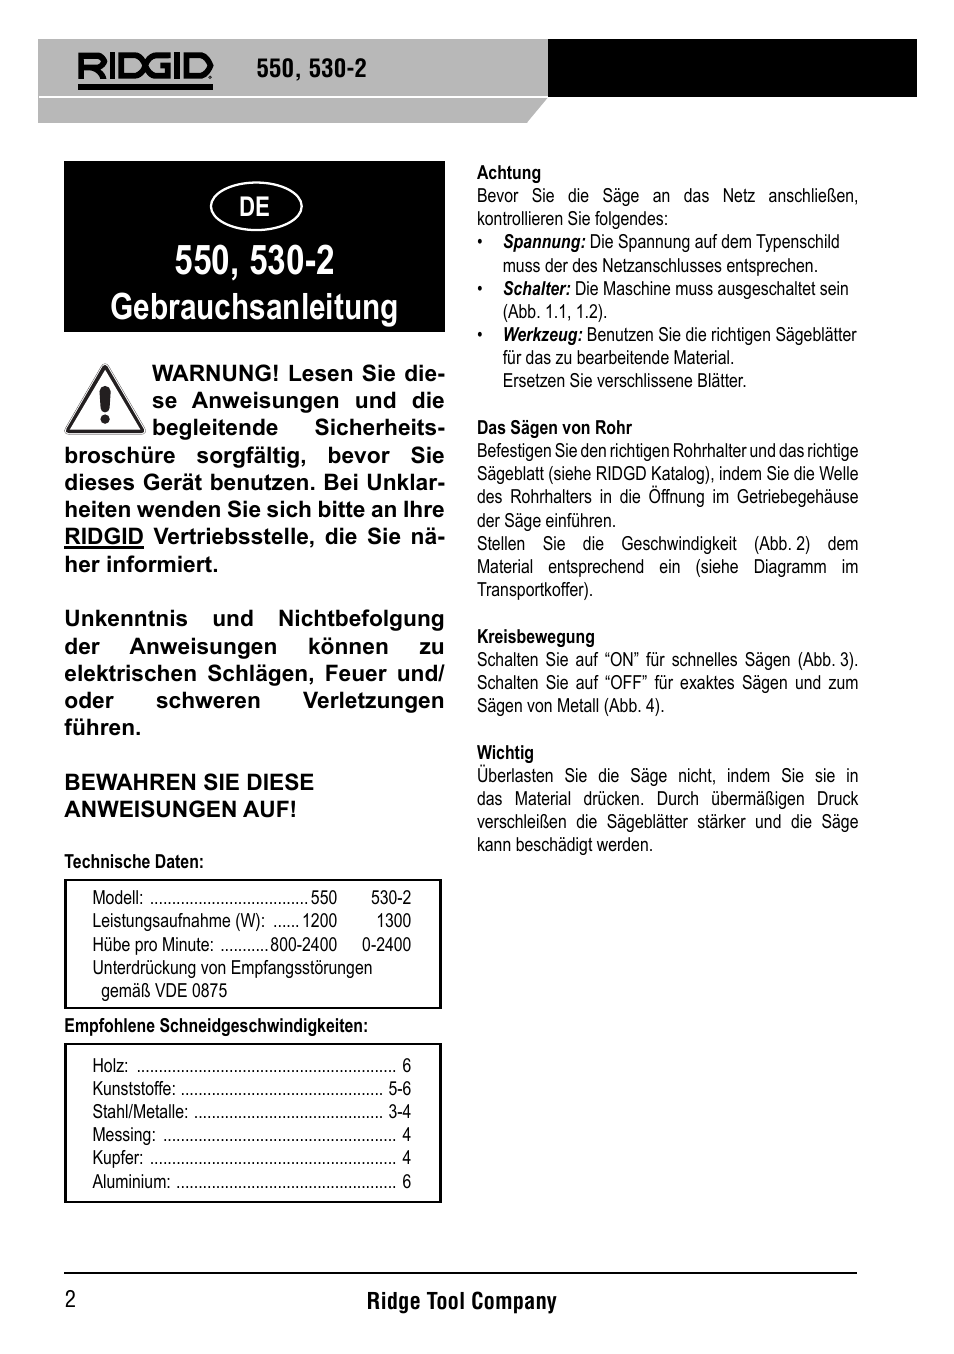 Gebrauchsanleitung | RIDGID 530-2 Reciprocating Saw User Manual ...